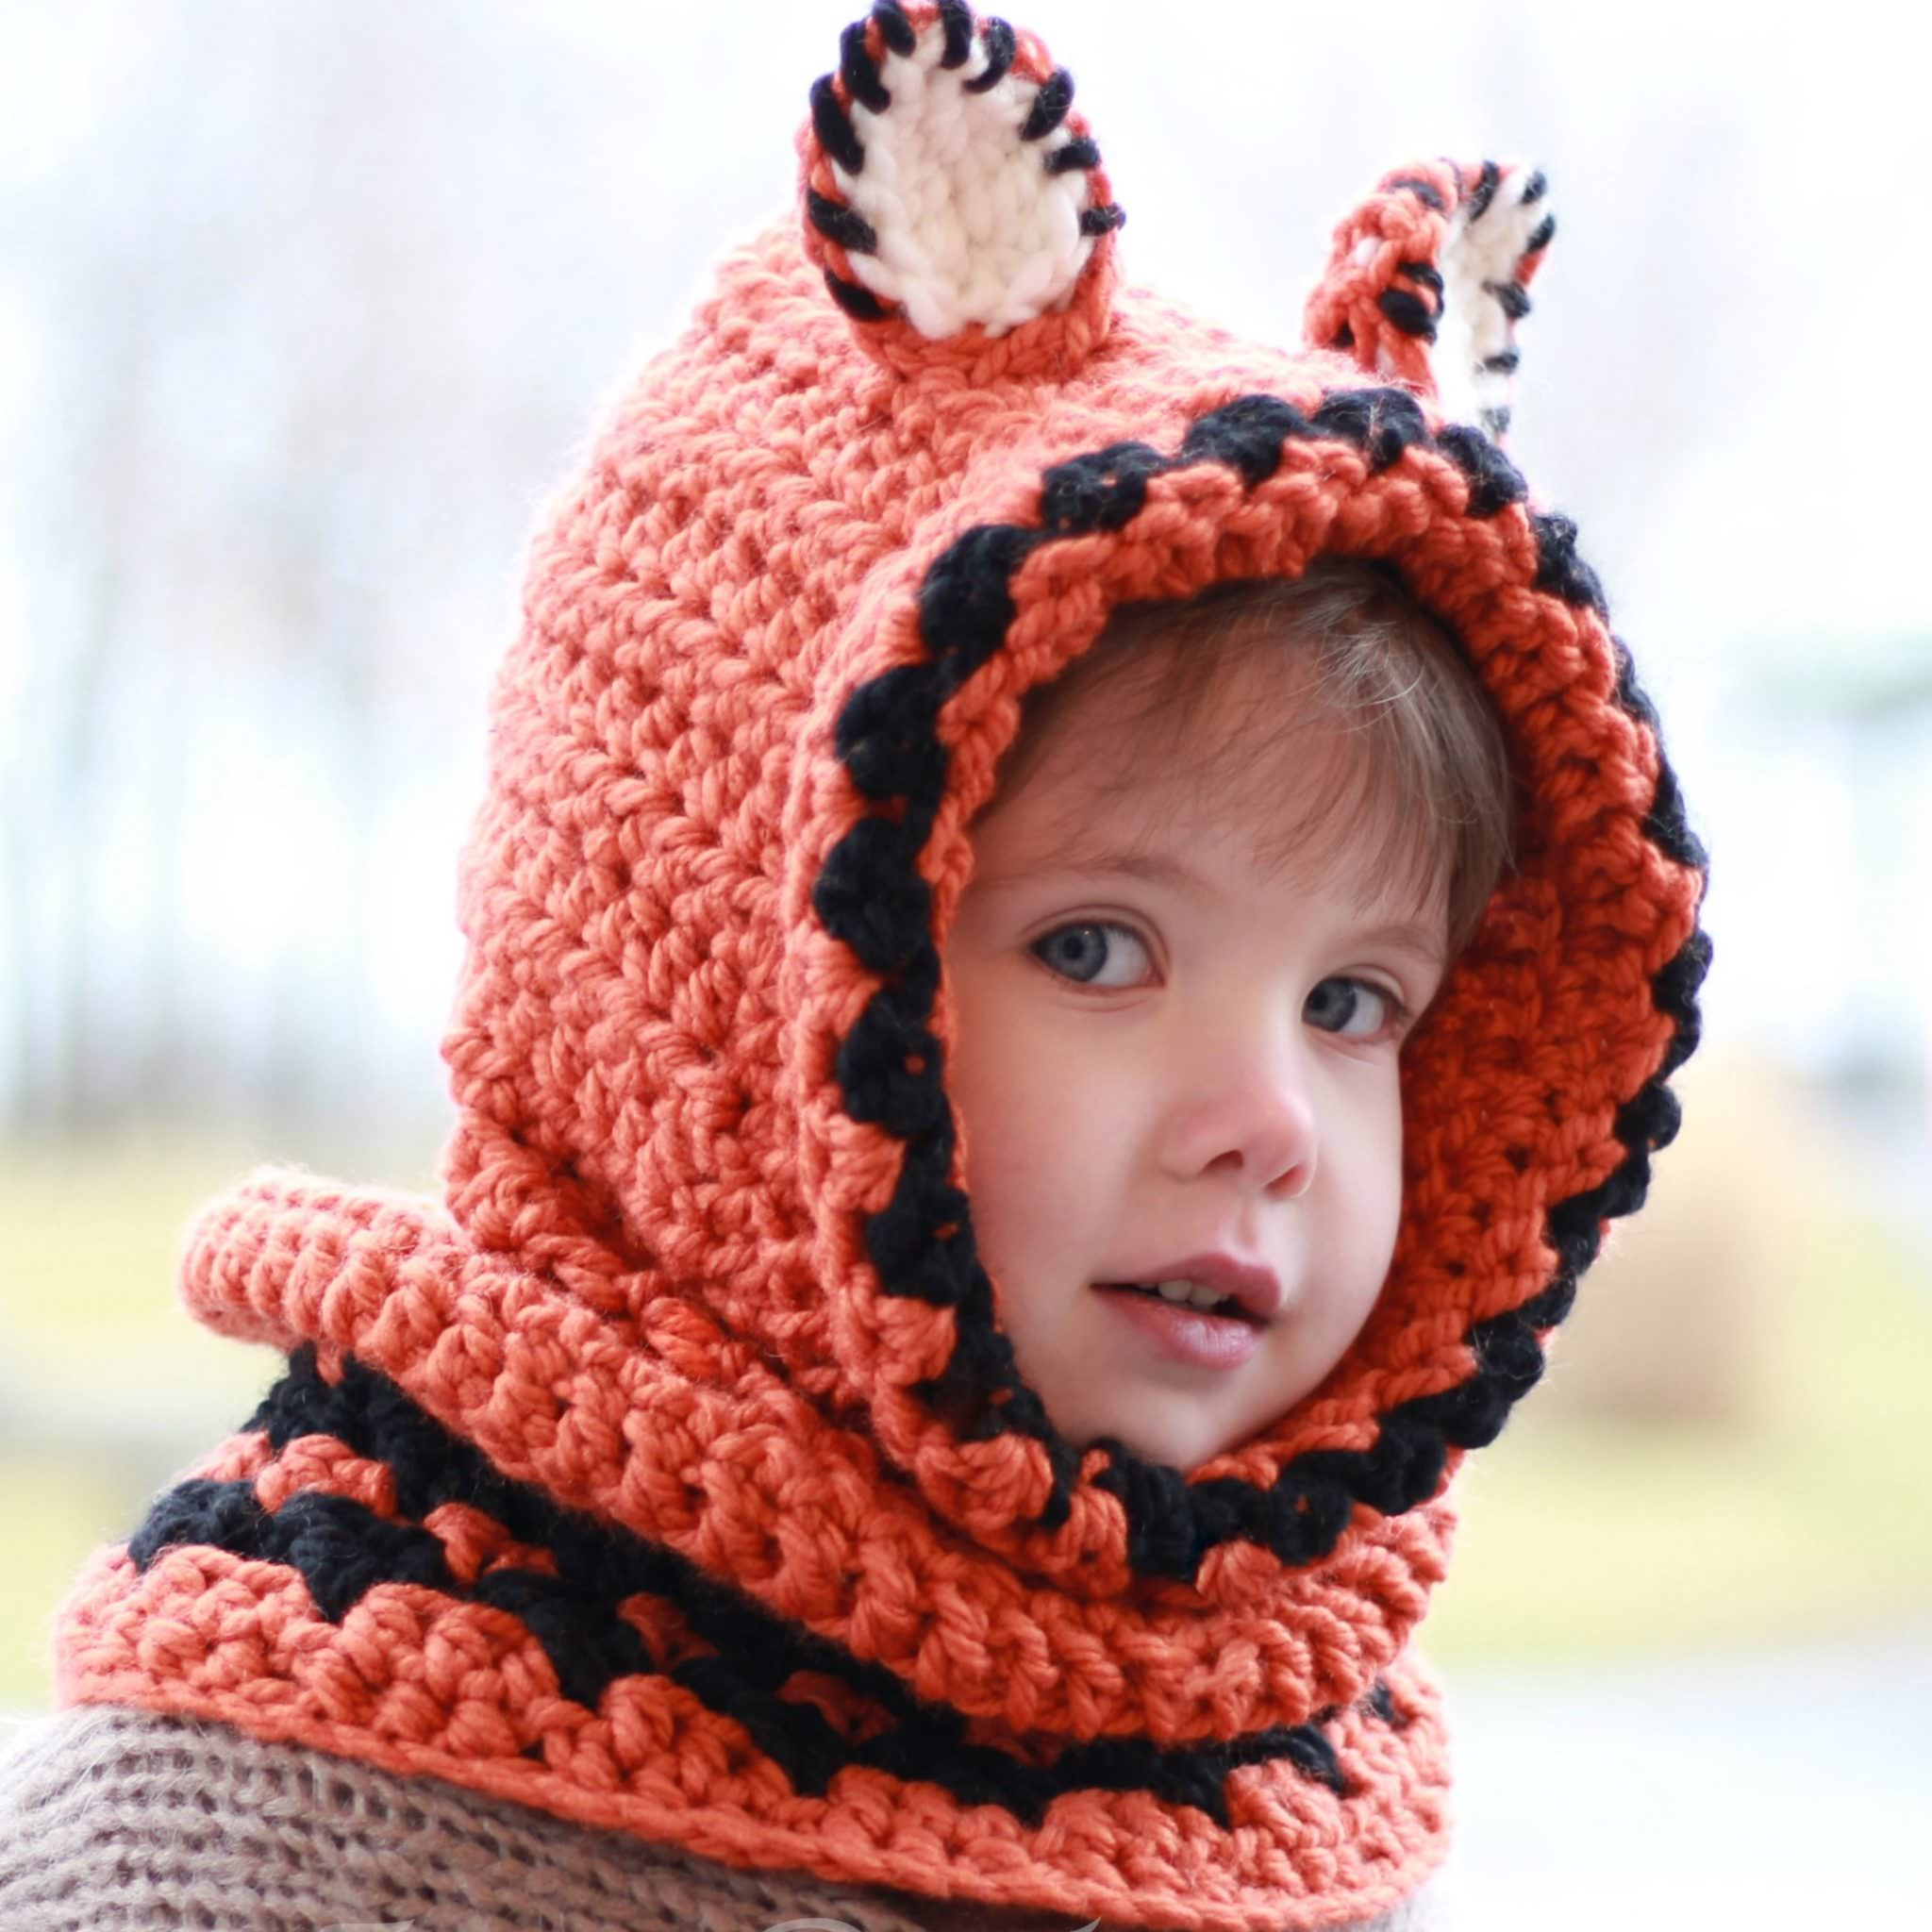 Frankie Fox Hooded Cowl - Crochet pattern - The Easy Design